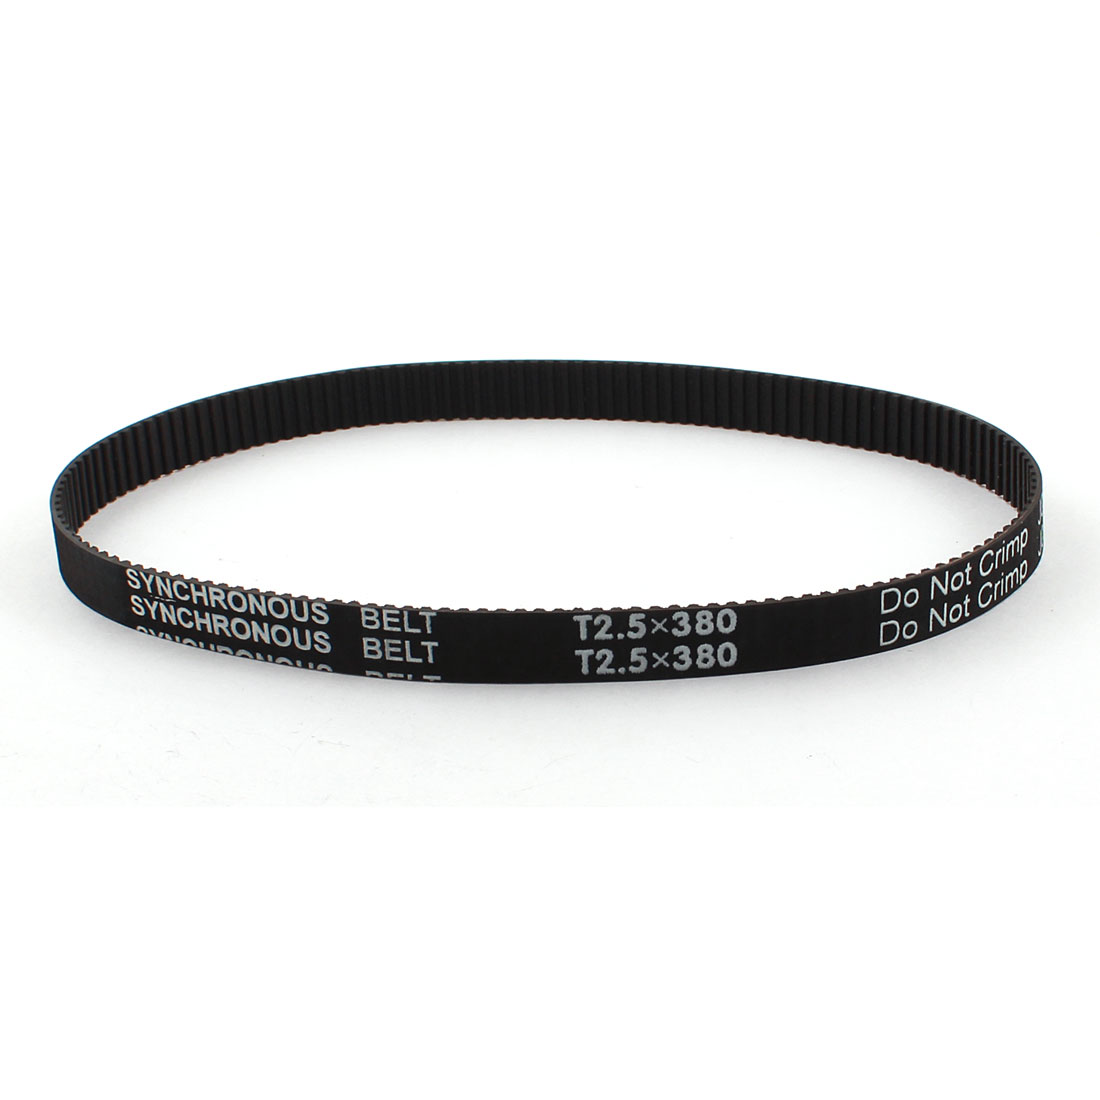 "T2.5x380 152-Teeth 10mm Width 2.5mm Pitch Black Industrial 3D Printer Groove Synchronous Timing Belt 15"" Girth"